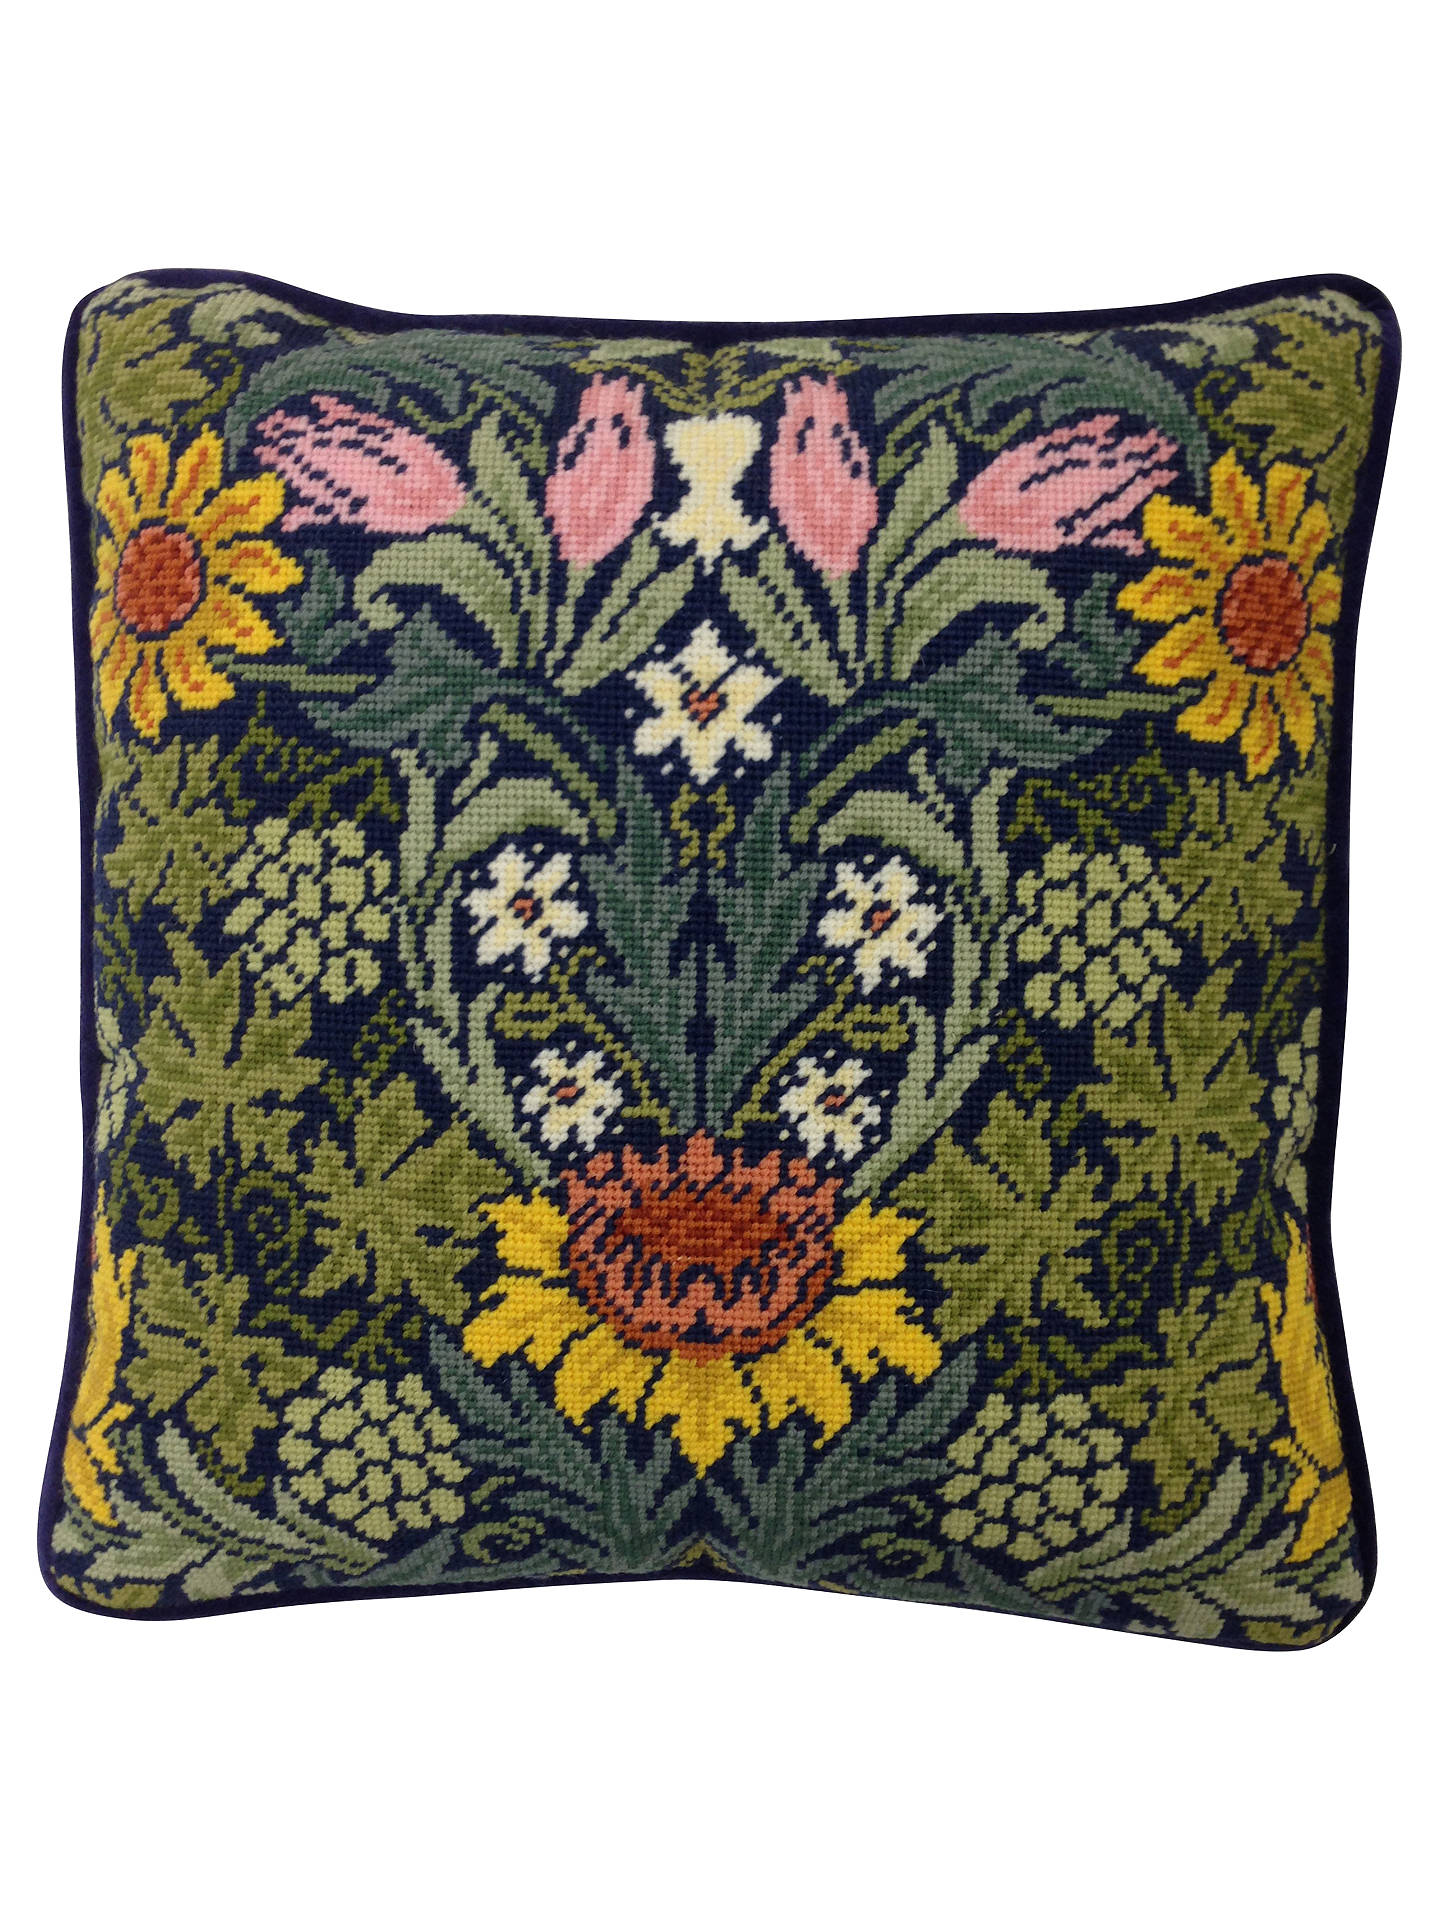 67327fa3d7c5 Buy Bothy Threads William Morris Sunflowers Printed Canvas Tapestry Kit  Online at johnlewis.com ...